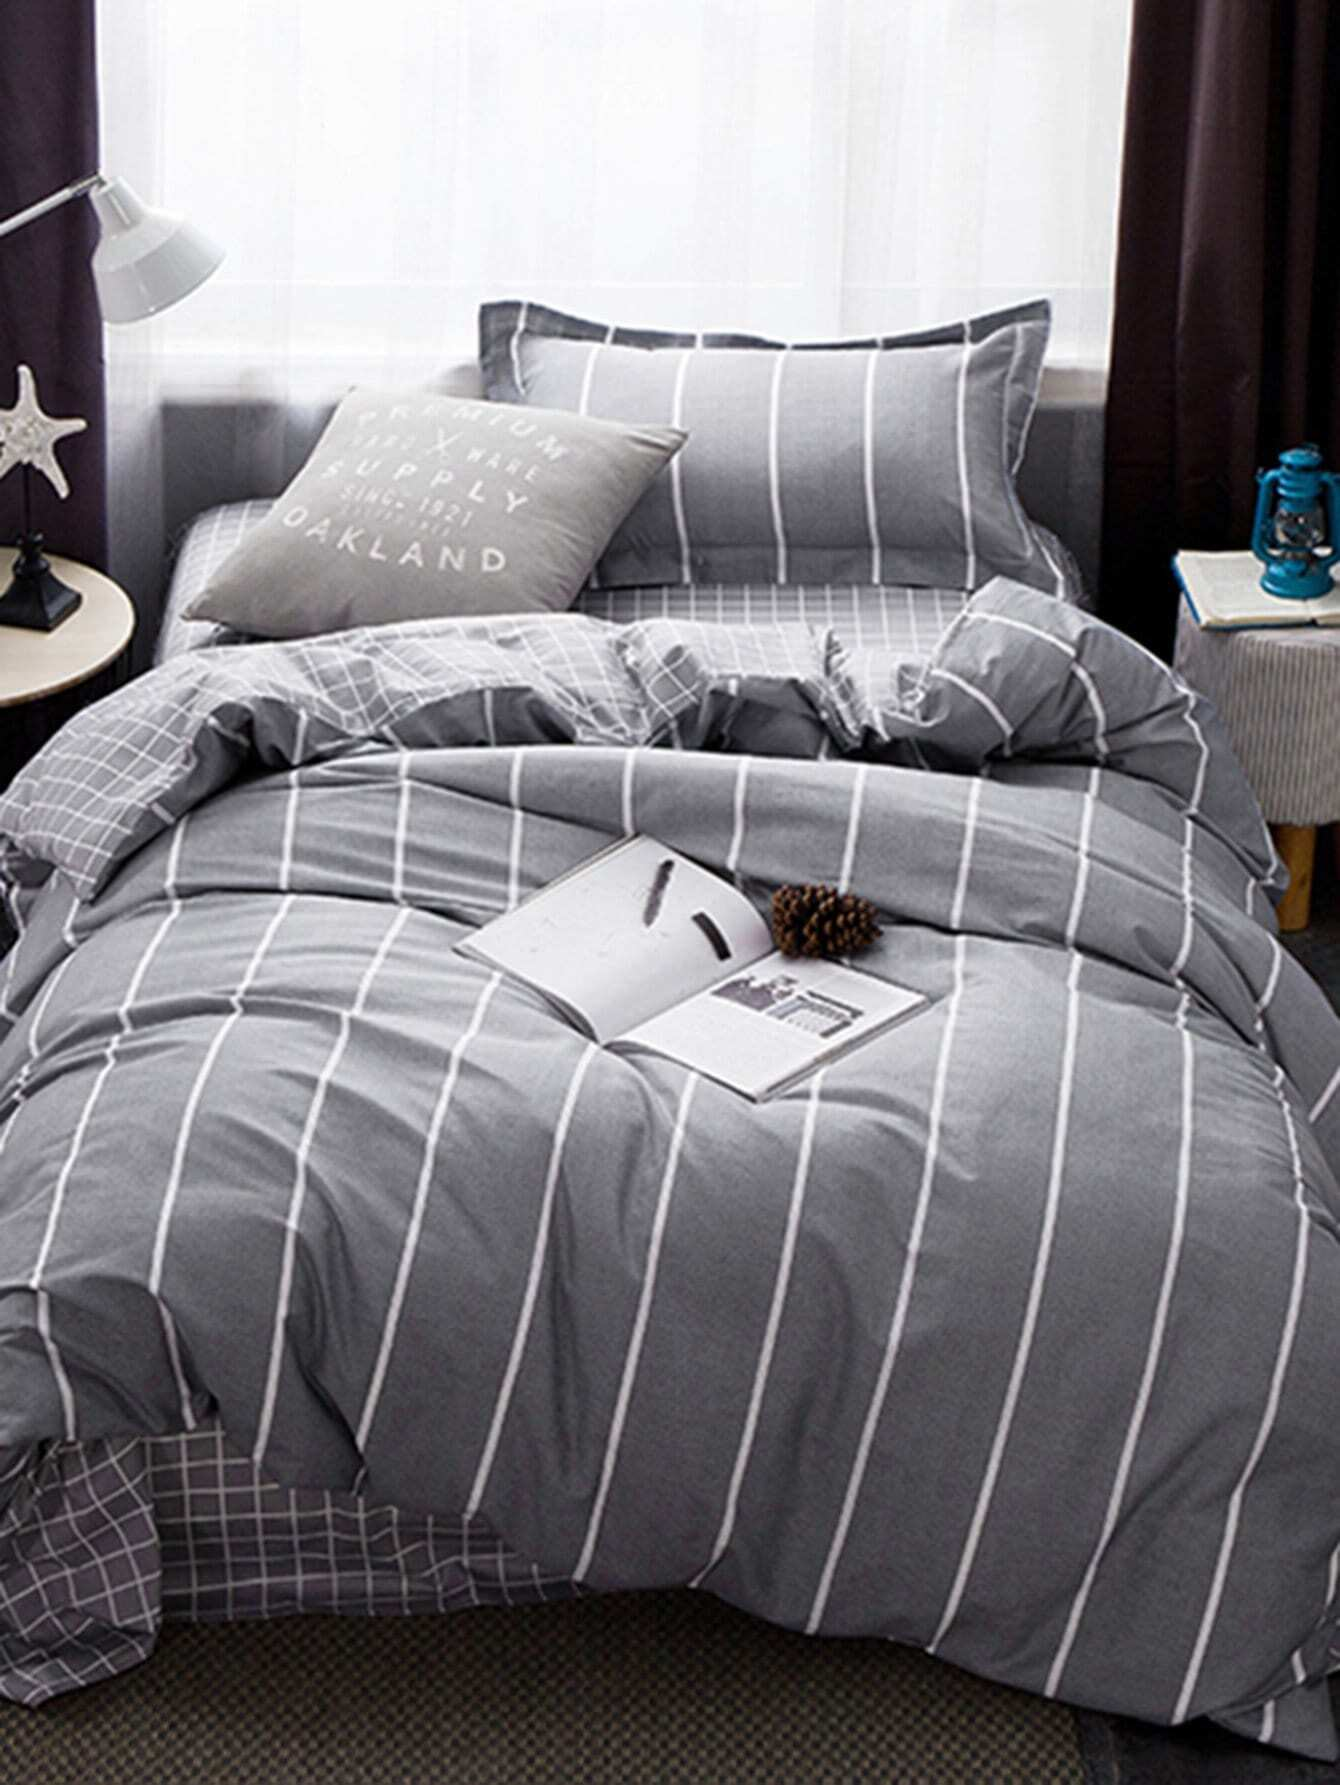 Striped Bedding Set vertical striped bedding set